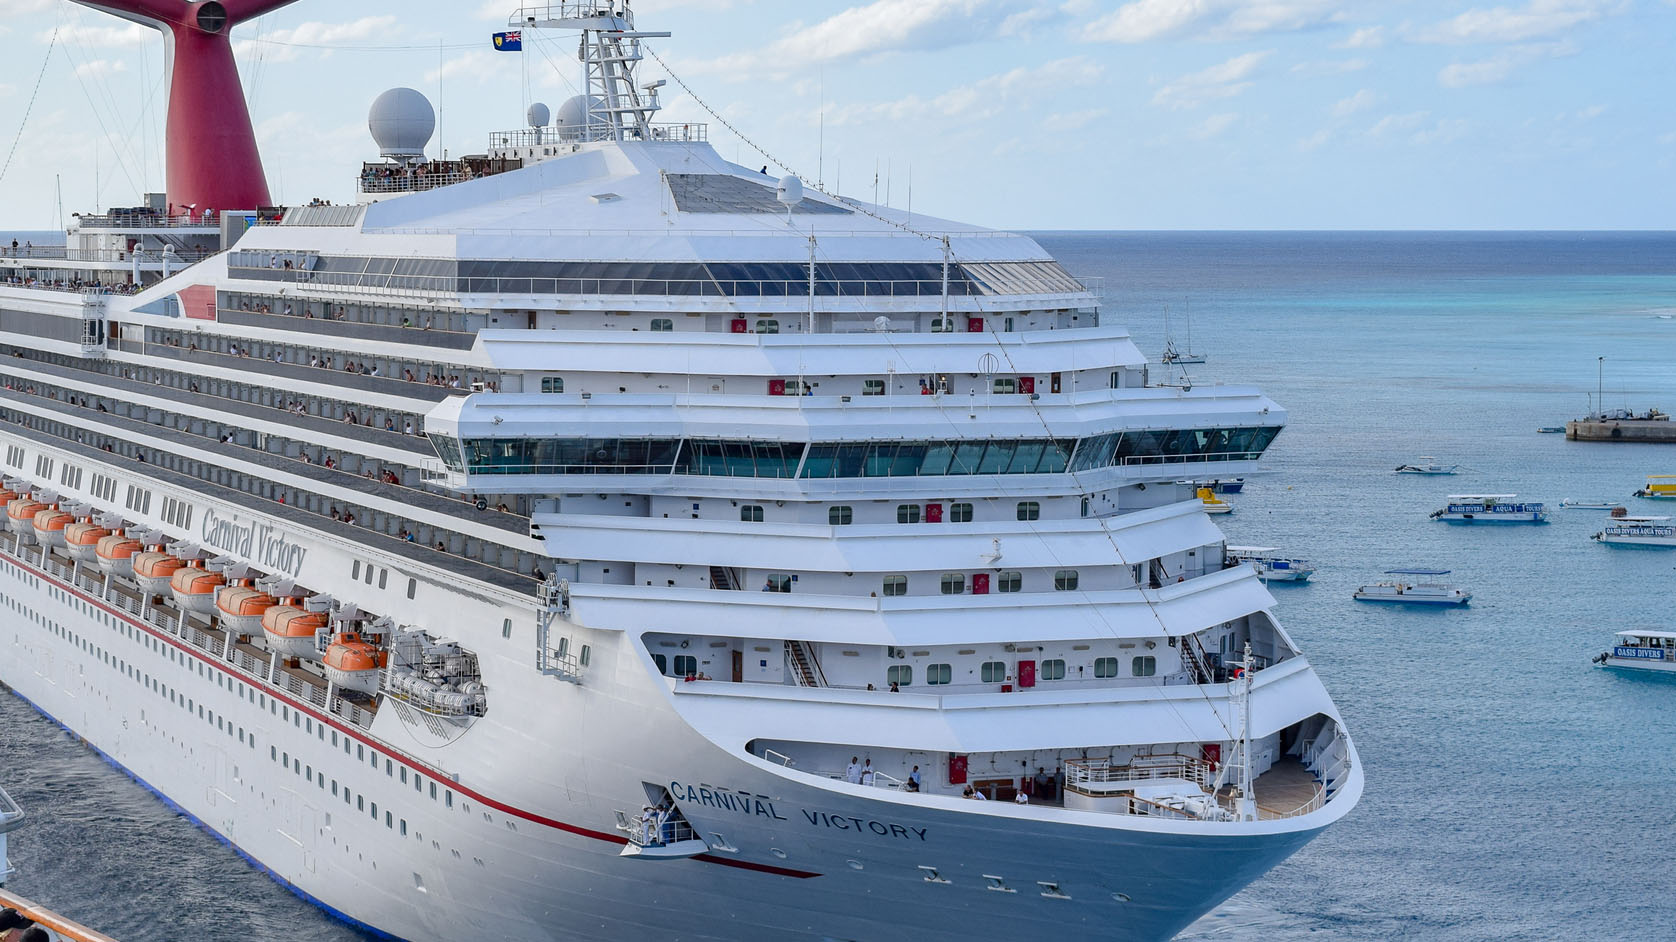 Westlake Legal Group Carnival-Victory Footage claims to show cruise ship spewing black smoke Michael Hollan fox-news/travel/general/cruises fox news fnc/travel fnc article 9369720d-6b5b-5b84-be19-9d8727b1fb30